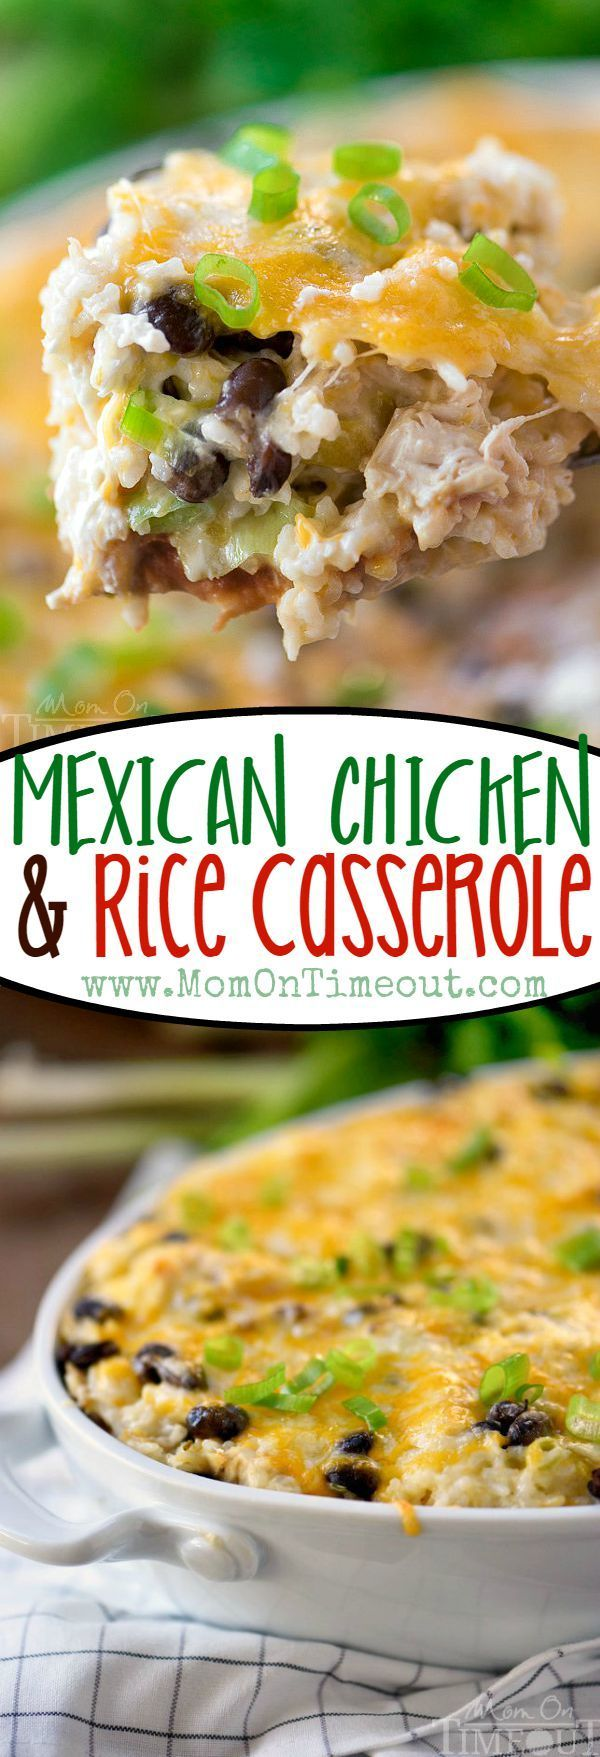 Like Mexican food? Then you've gotta try this Mexican Chicken and Rice Casserole! Full of classic Mexican flavors in an easy weeknight package! // Mom On Timeout #dinner #casserole #chicken #mexican #food #recipe #rice #easy #dinners #recipes #ad